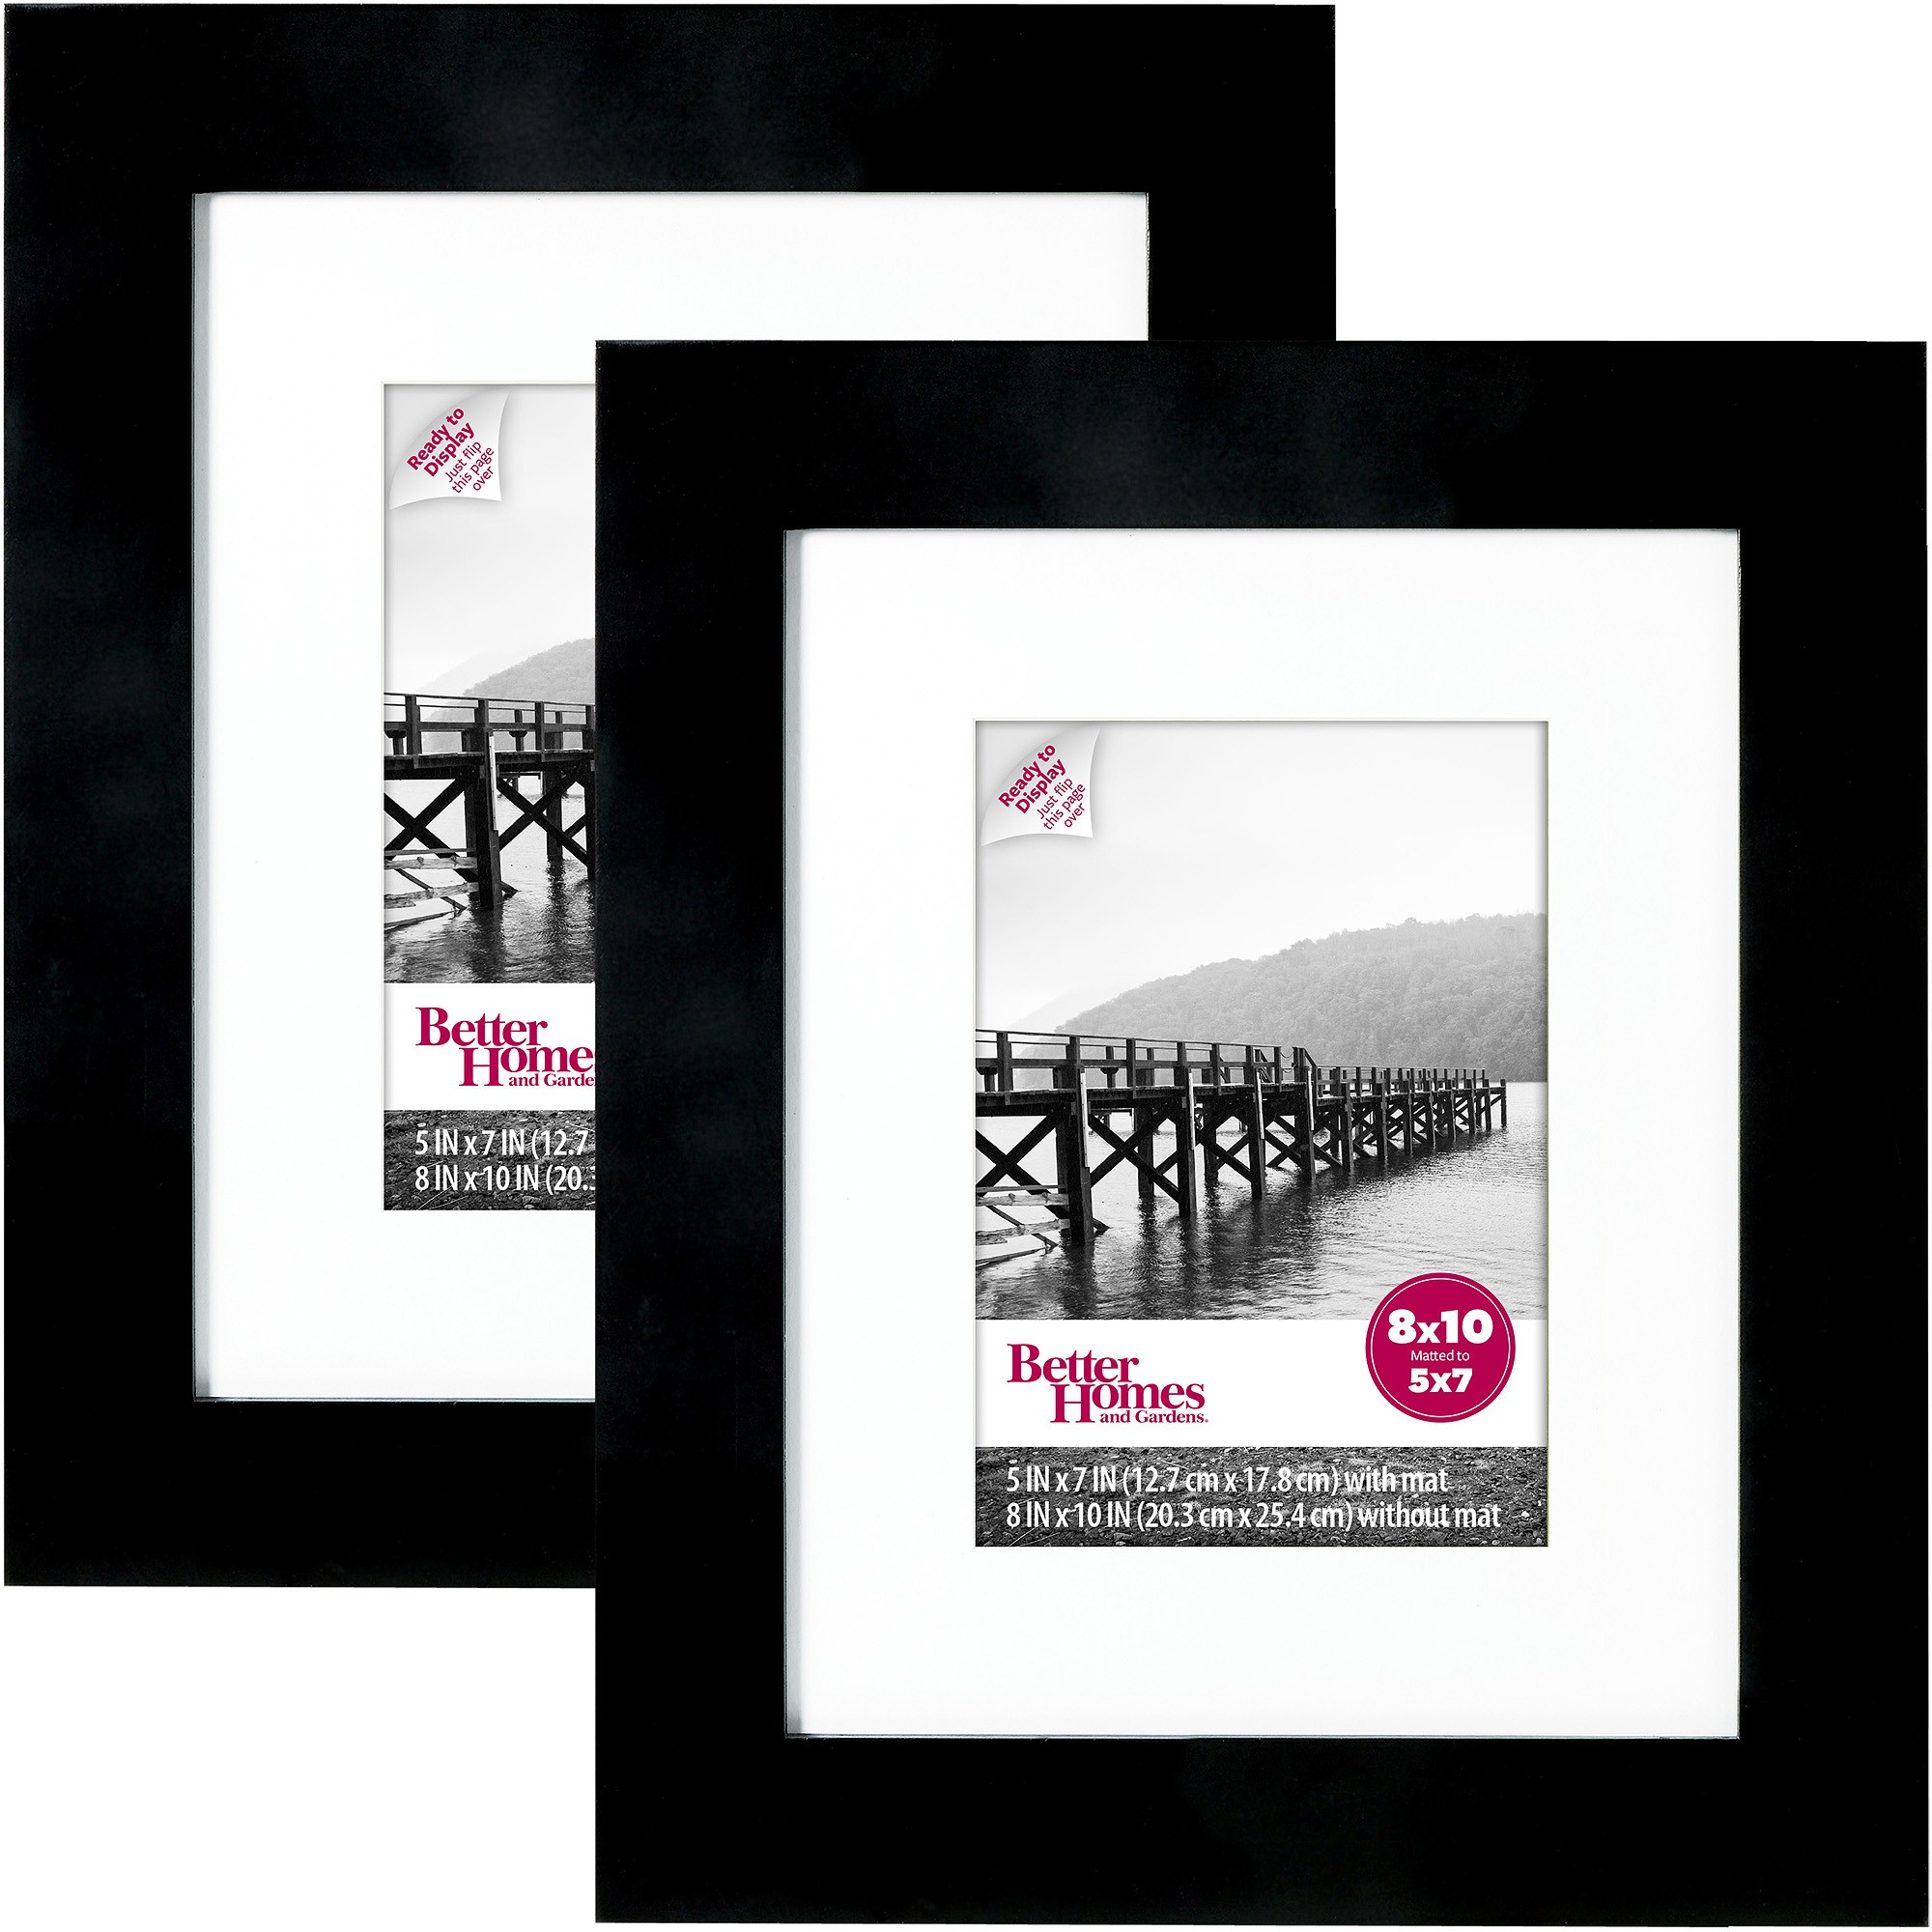 Better Homes & Gardens 8x10 Wide Picture Frame, Black, Set of 2